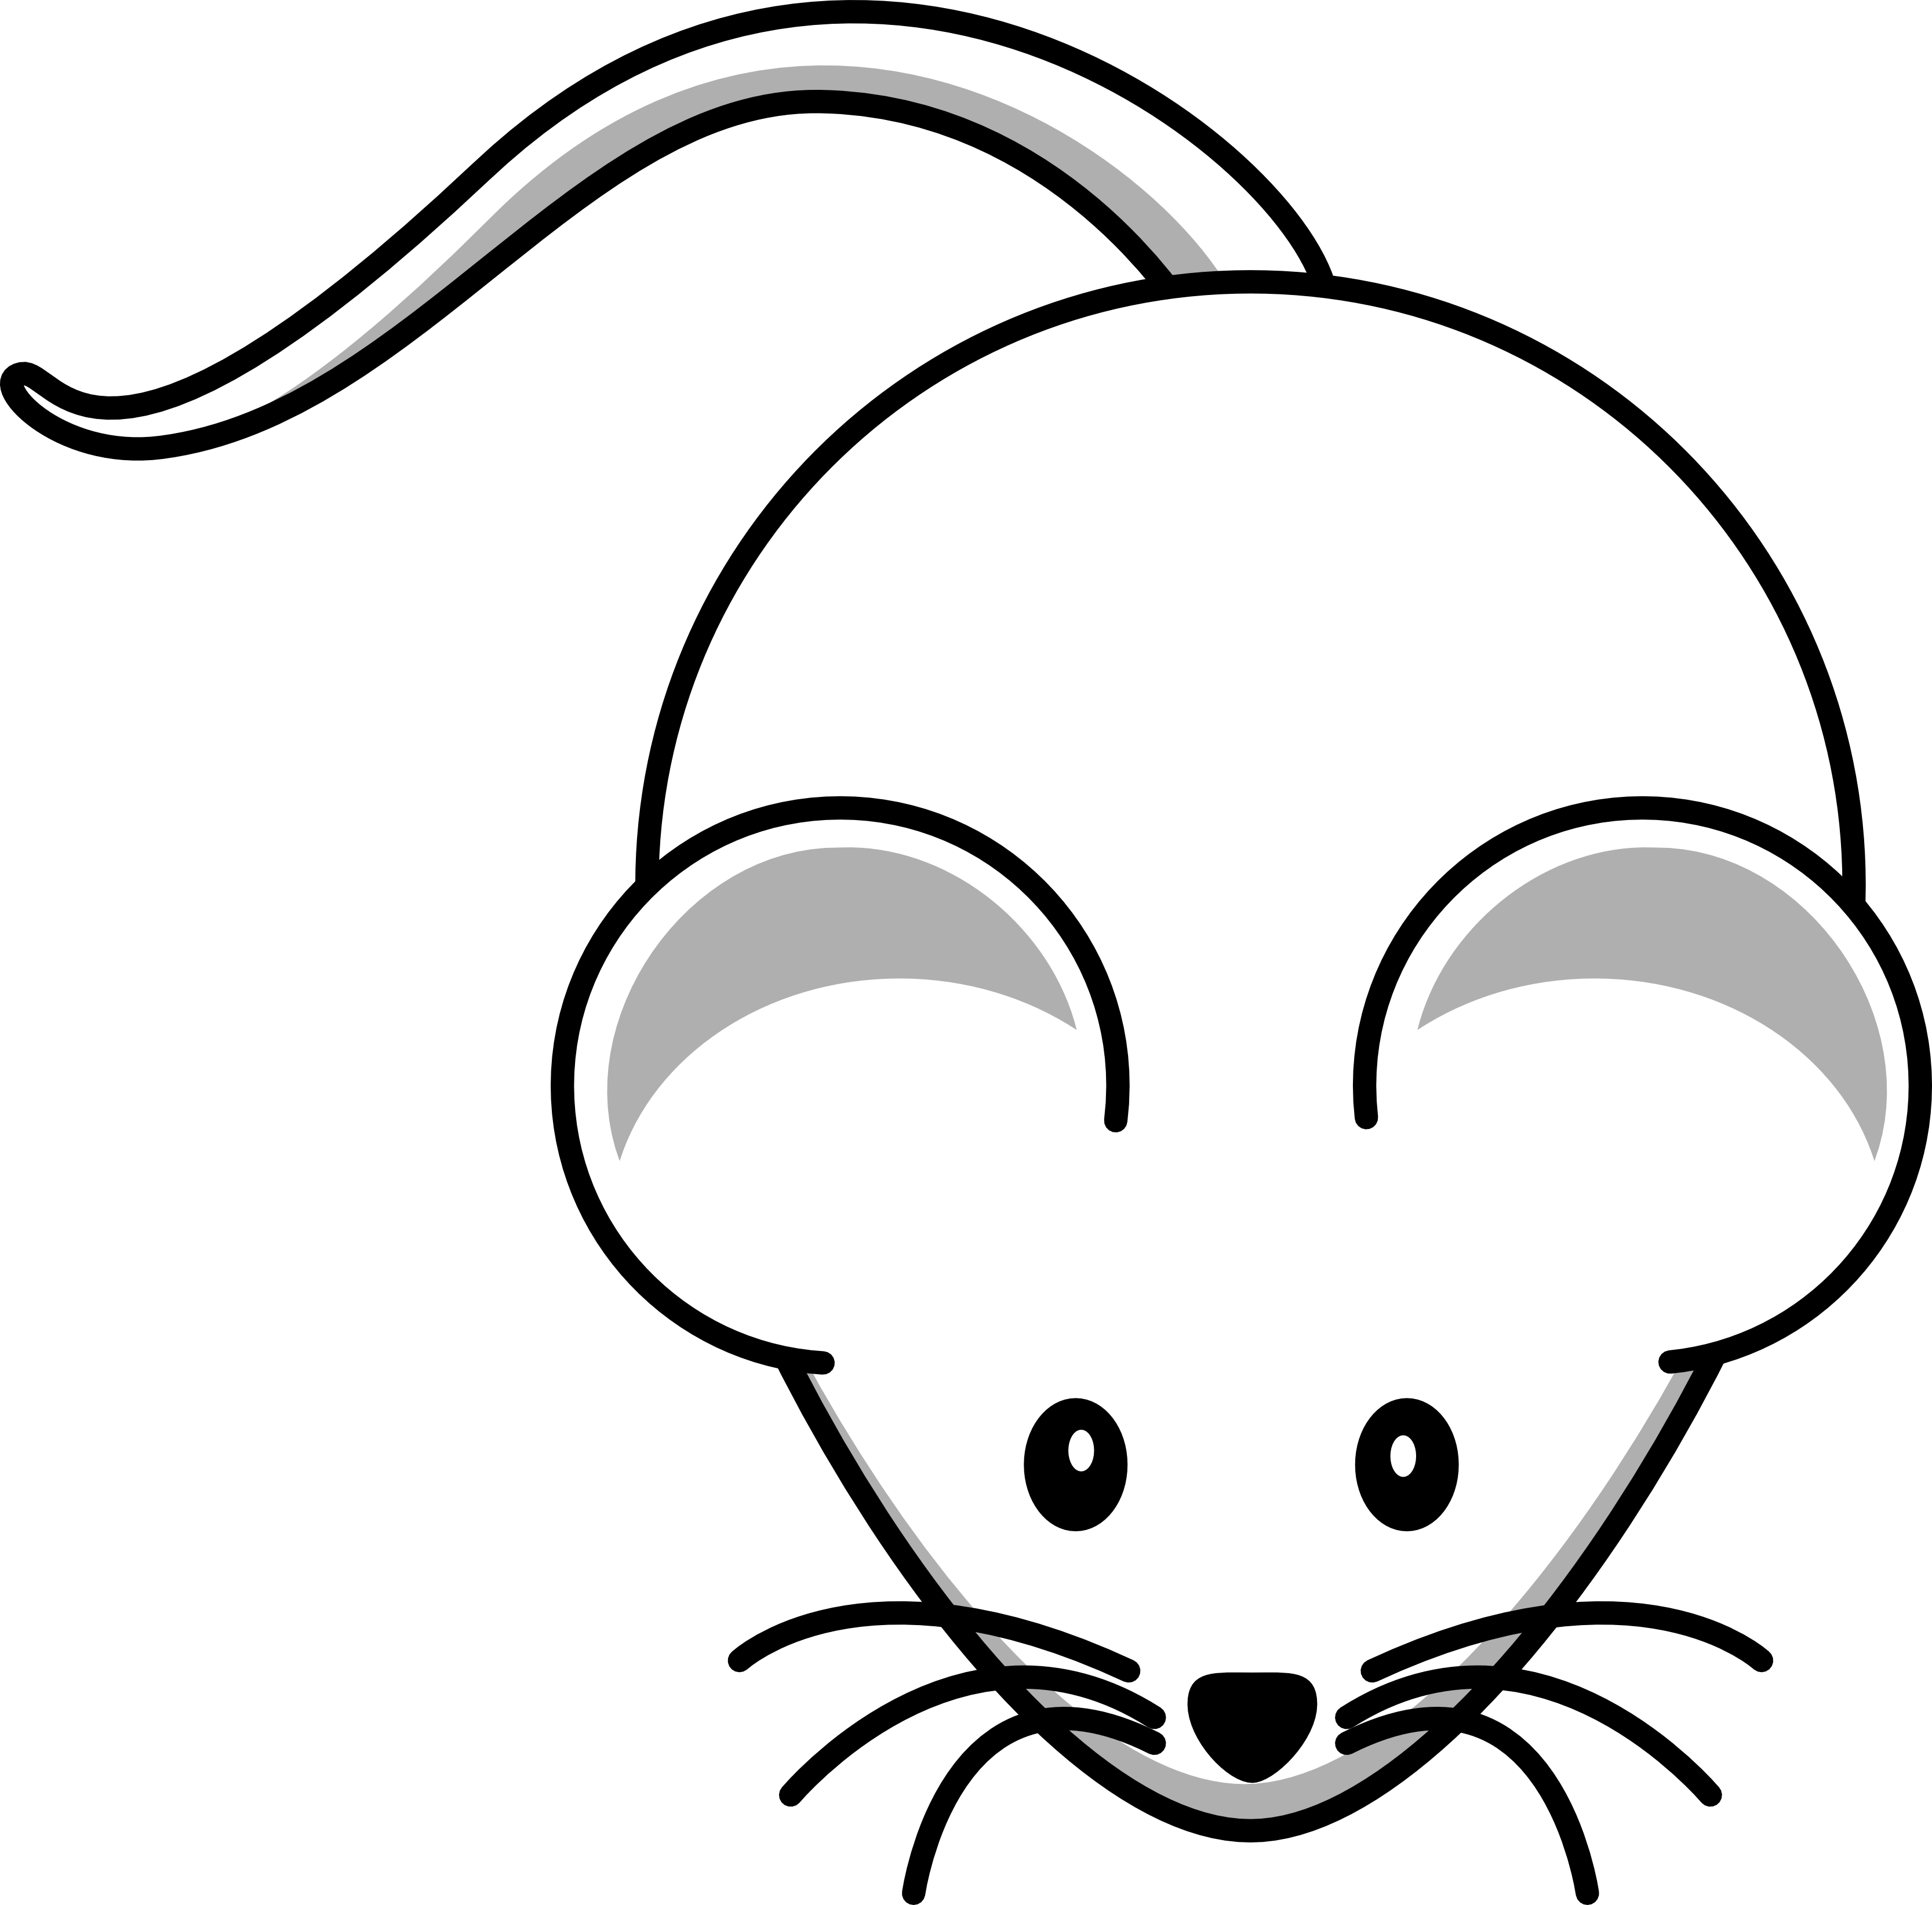 Cat chasing mouse clipart banner royalty free download Mouse Clip Art Black And White | Clipart Panda - Free Clipart Images banner royalty free download